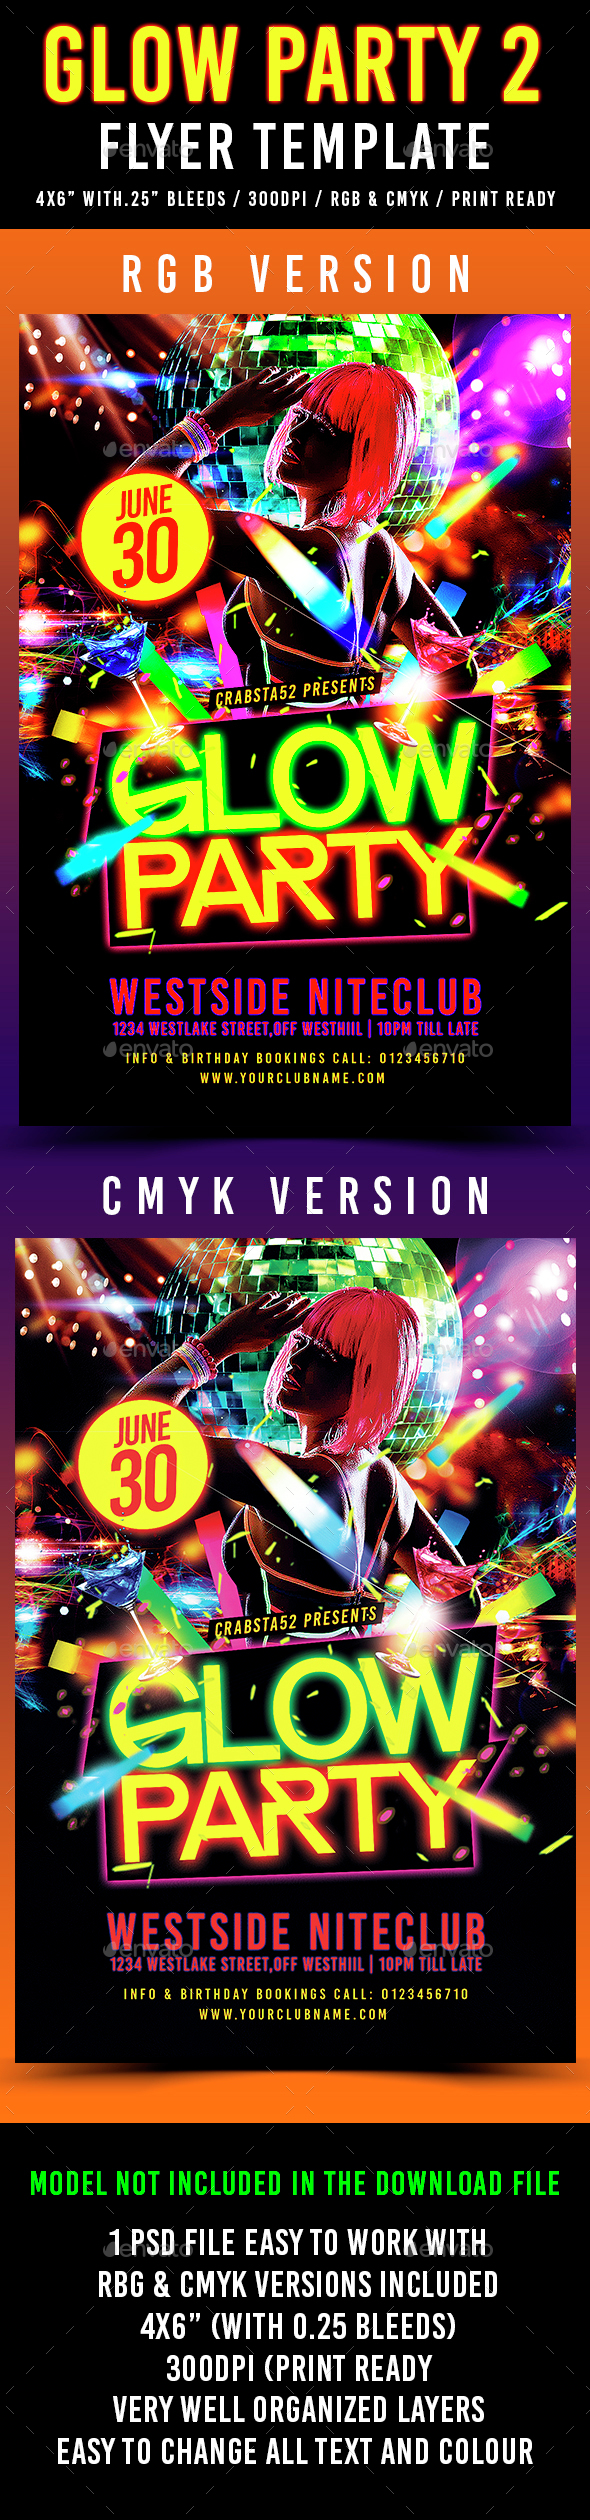 Glow Party Flyer Template 2 - Flyers Print Templates